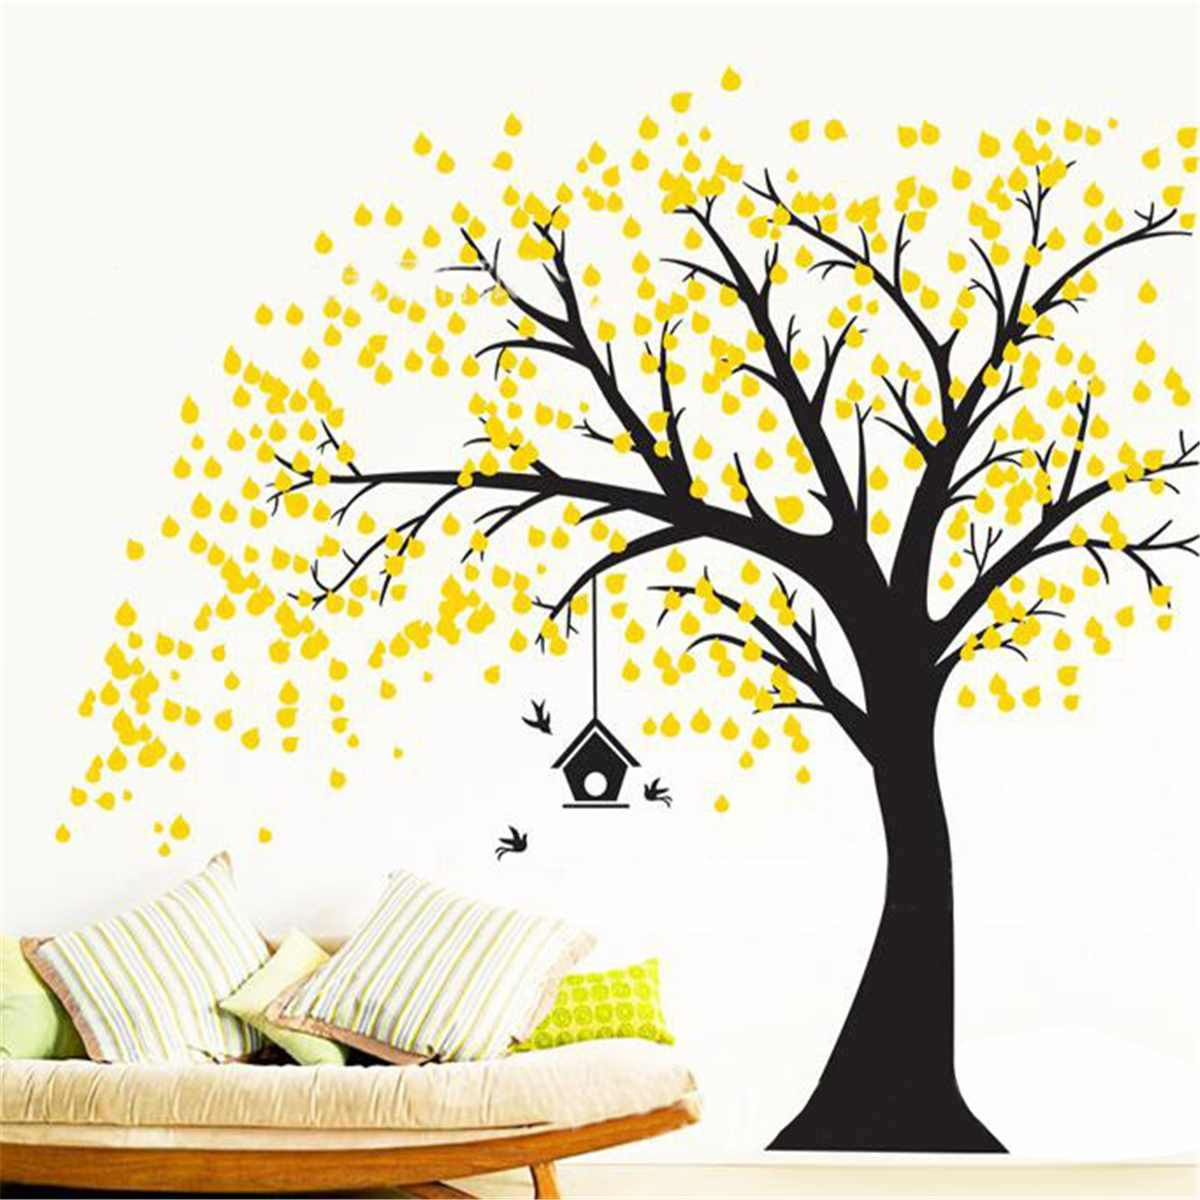 DIY PVC Green Yellow Tree Wall Stickers Vinyl Art Wall Decals Murals Removable Home Living Room Kids Playroom Decorations Crafts